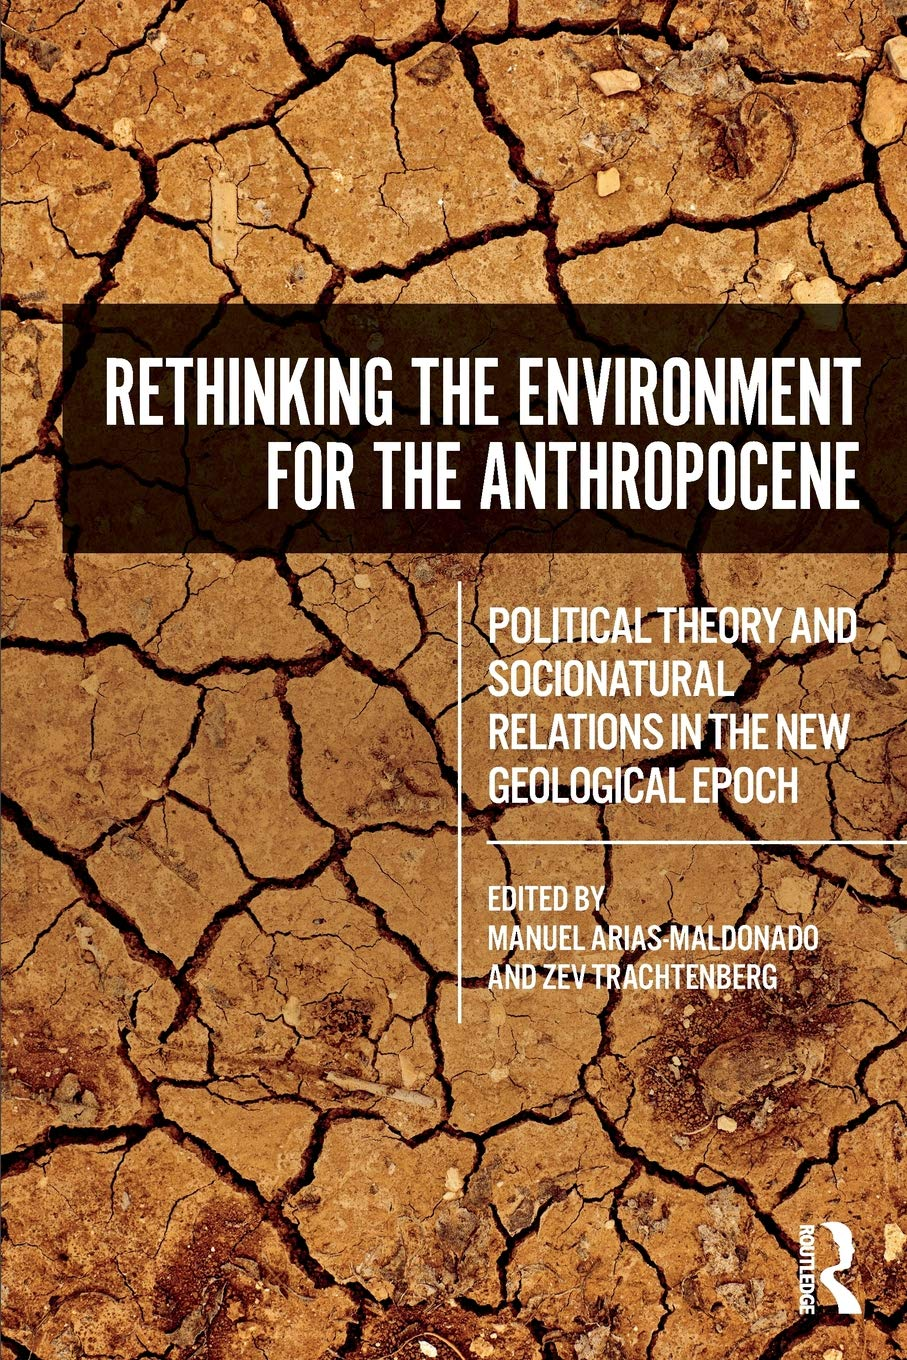 RETHINKING THE ENVIRONMENT FOR THE ANTHROPOCENE: POLITICAL THEORY AND SOCIONATURAL RELATIONS IN THE